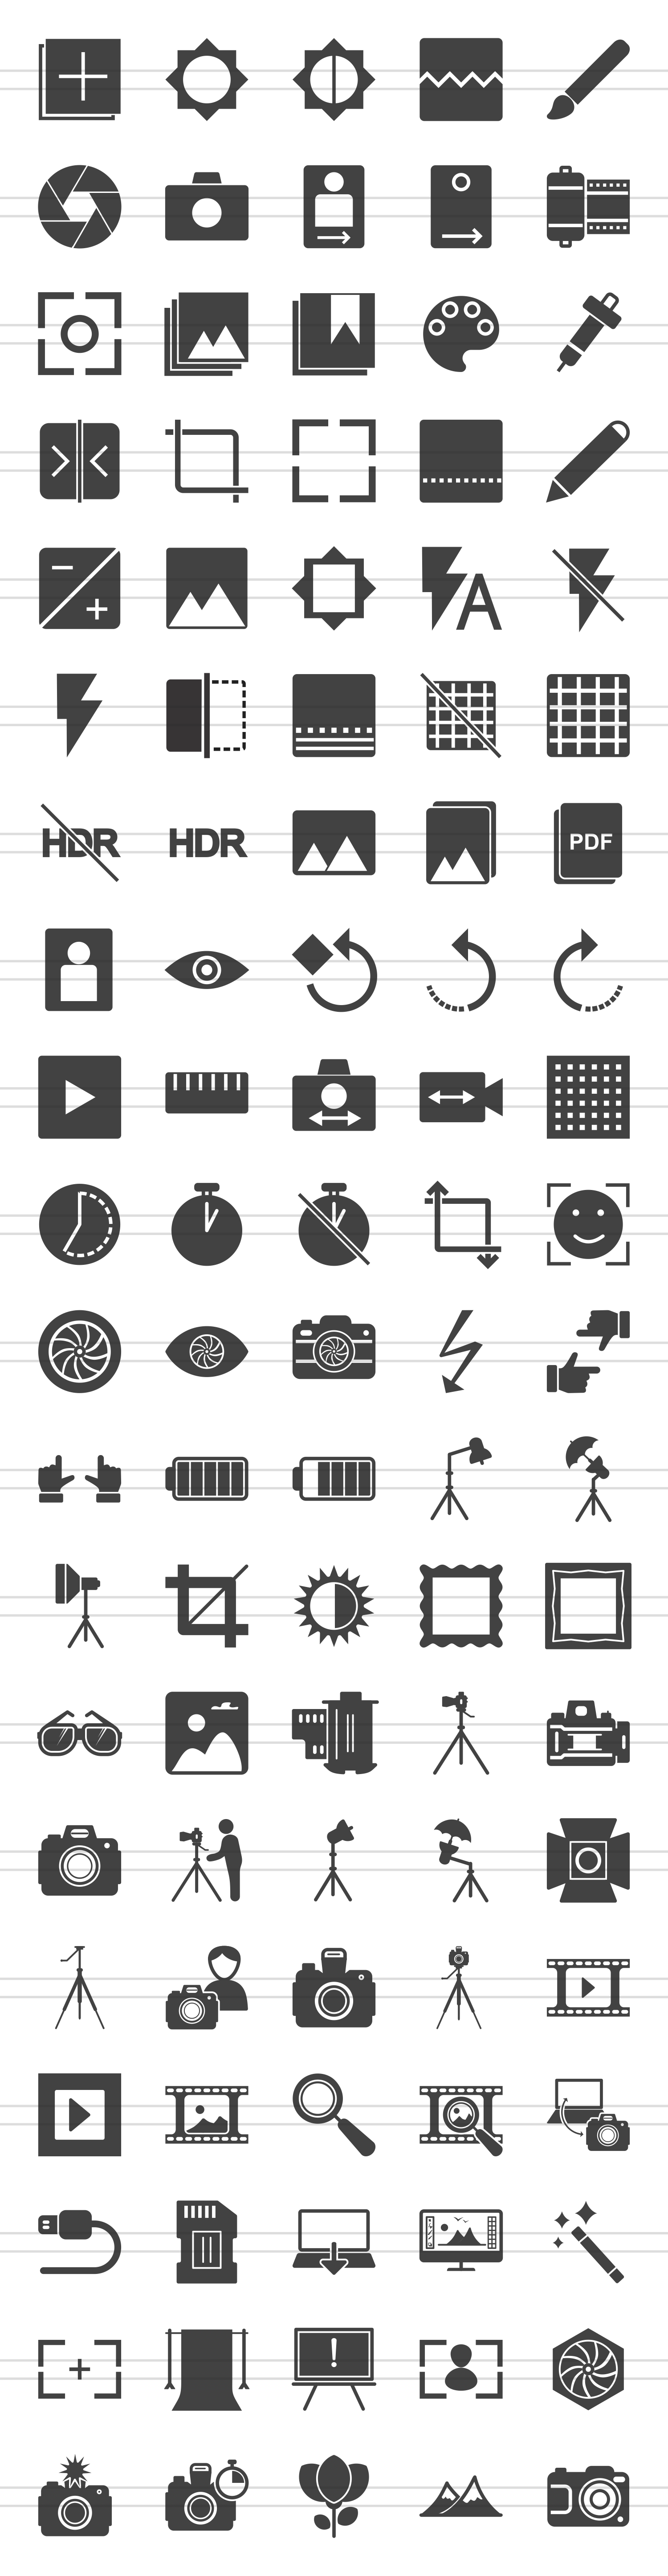 100 Photography & Picture Glyph Icons example image 2